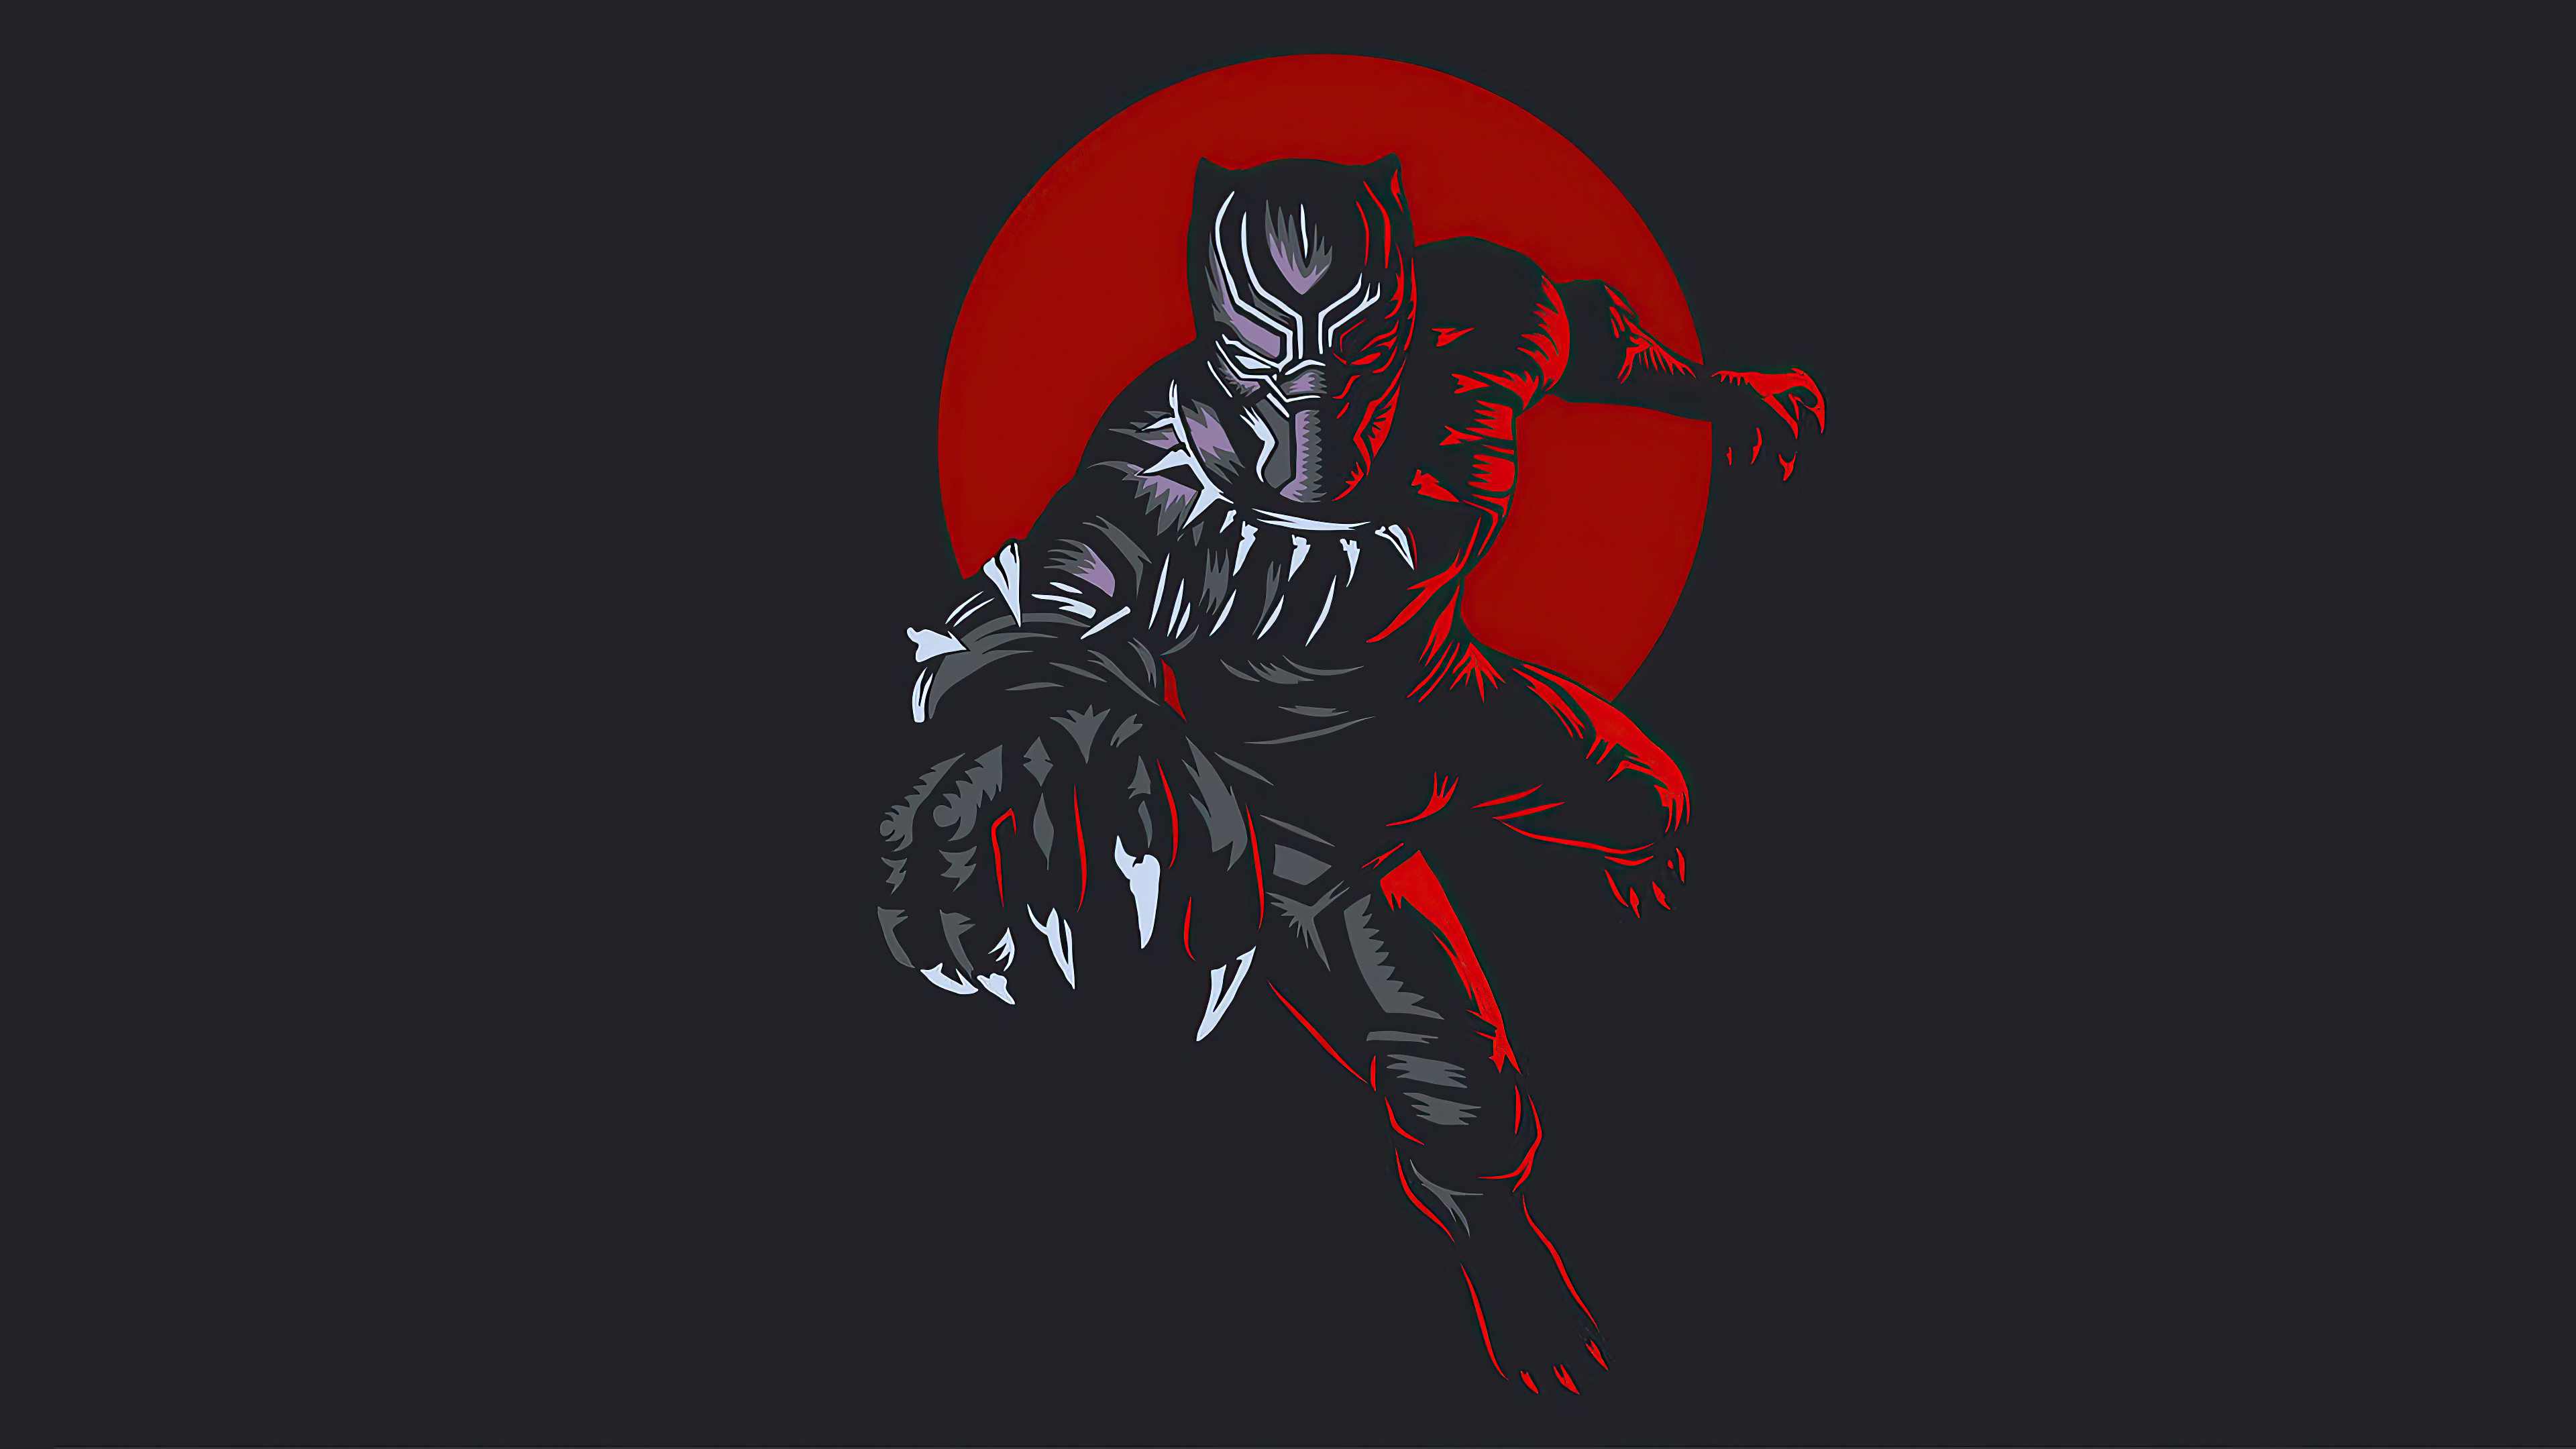 black panther wakanda king 1602351925 - Black Panther Wakanda King - Black Panther Wakanda King 4k wallpapers